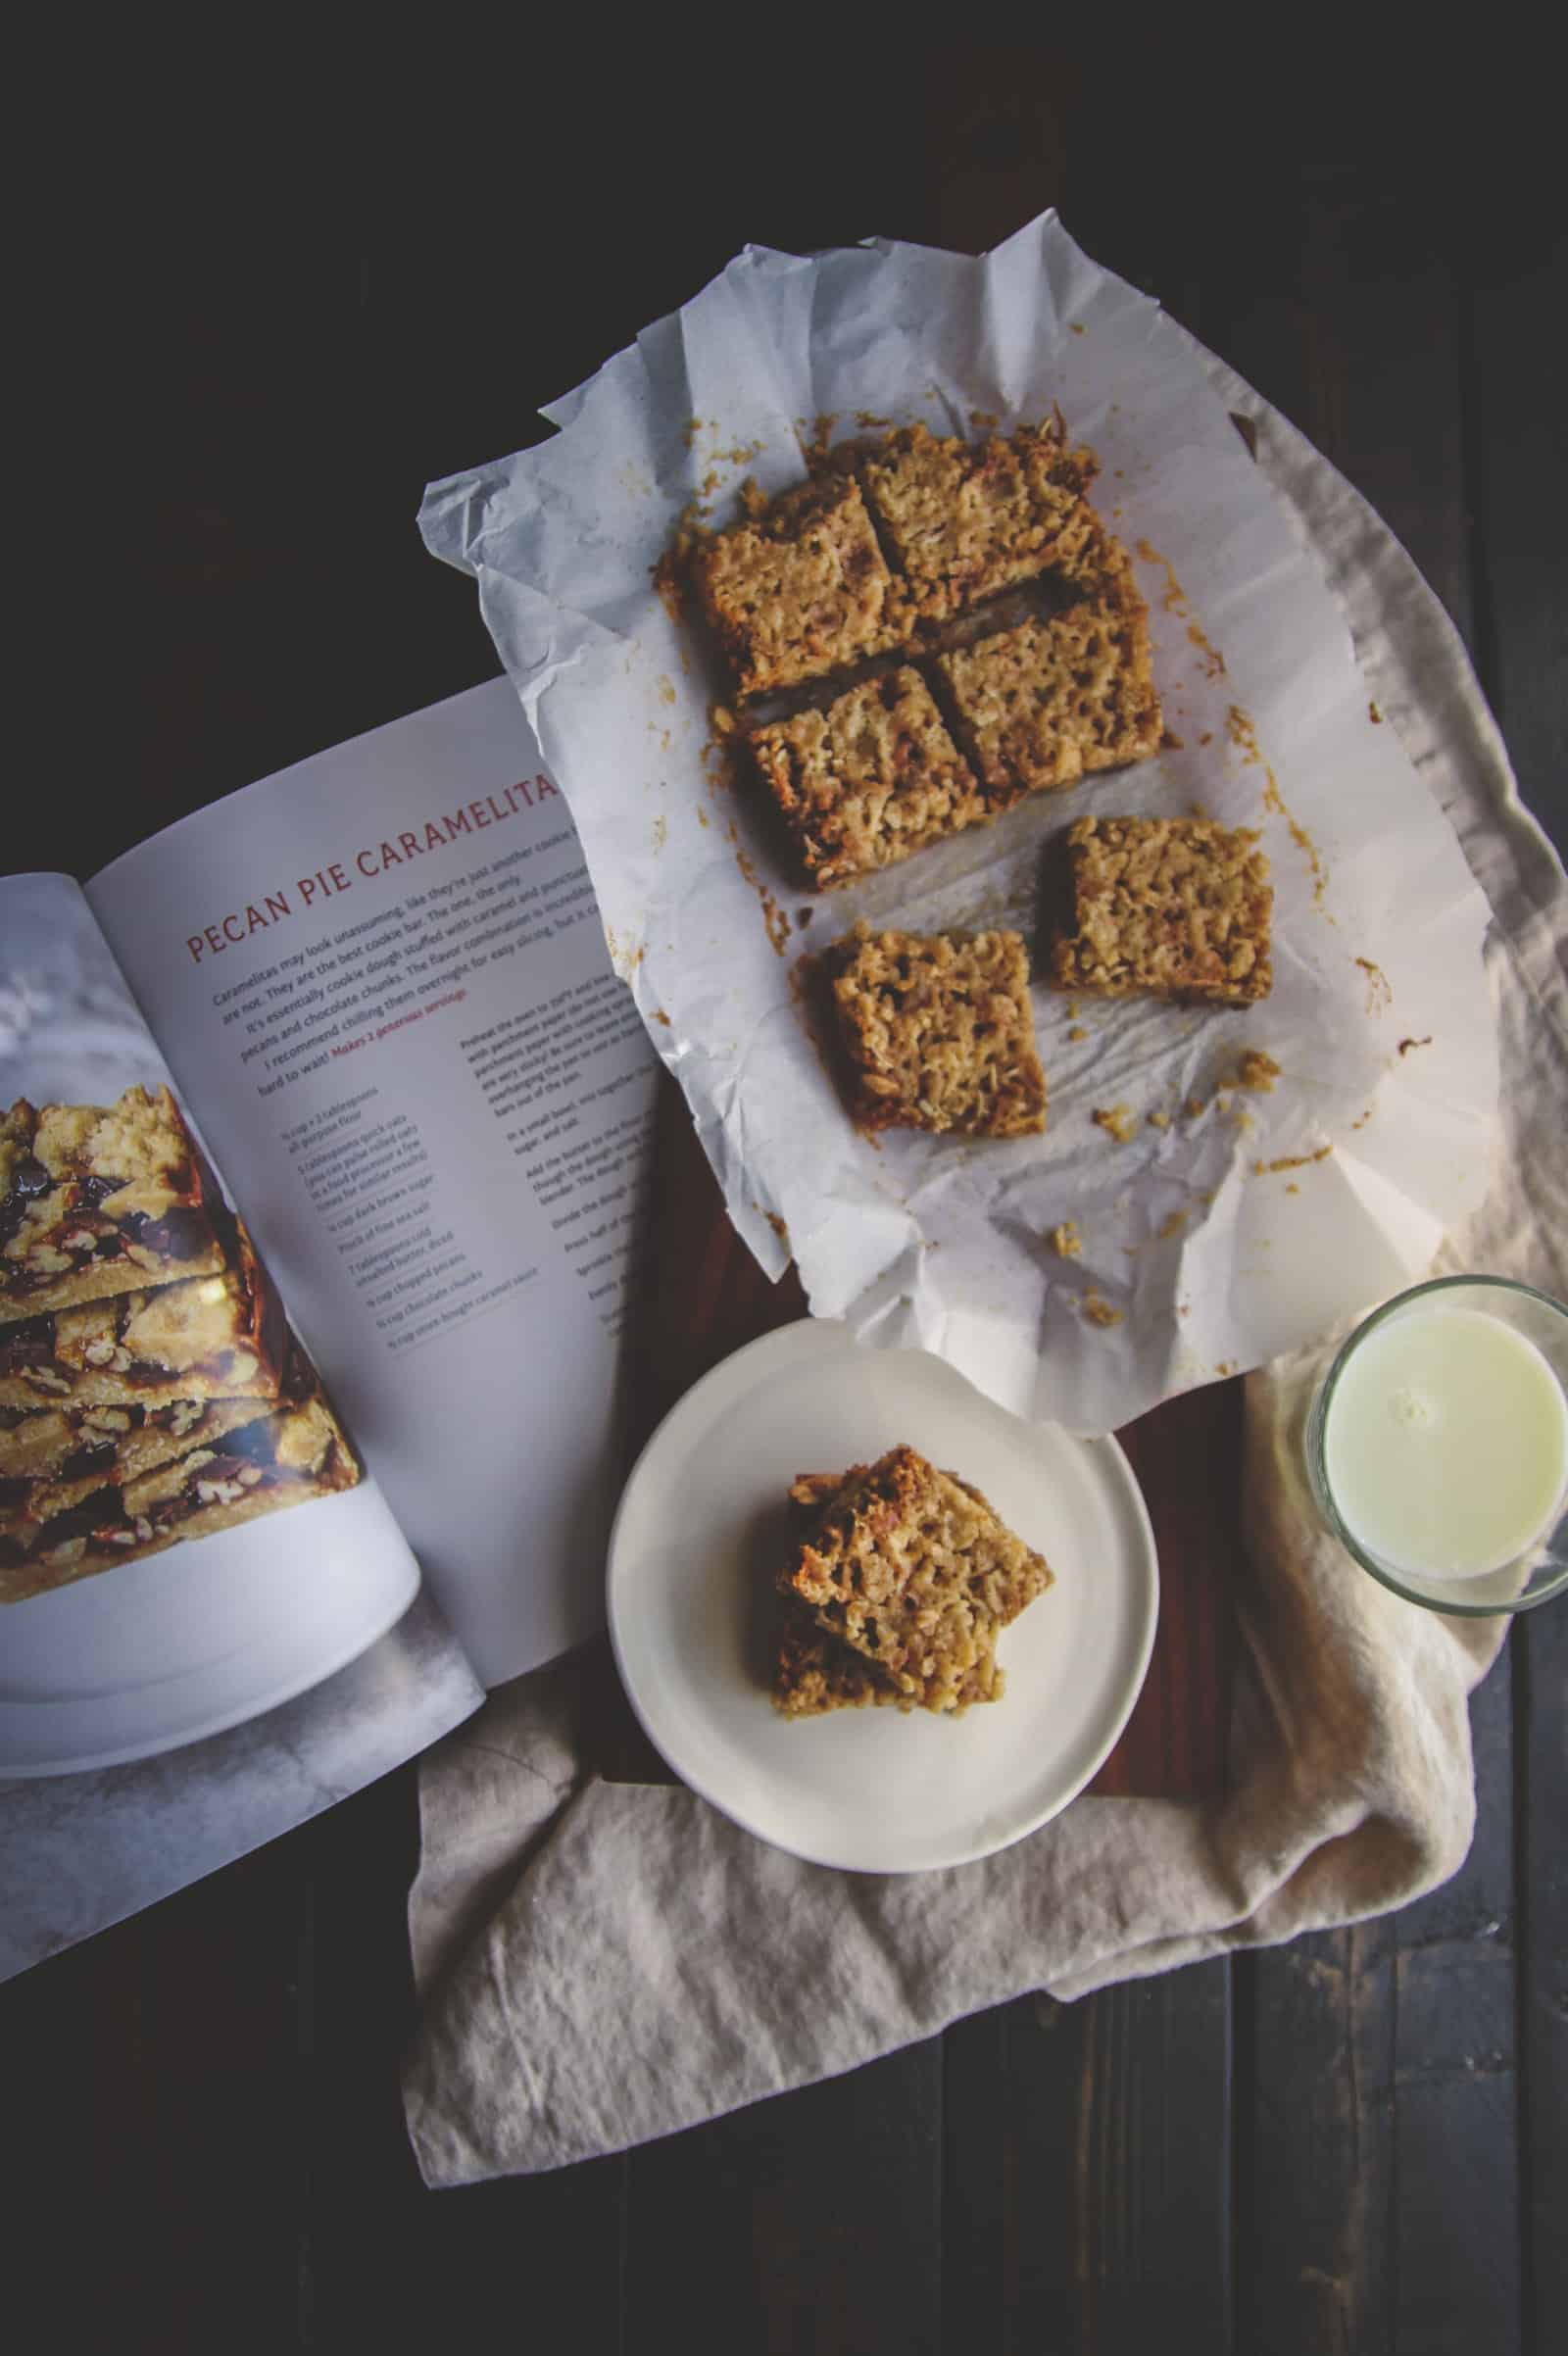 Pecan pie carmelita bars, dessert bars for two, dessert made in a loaf pan, pecan pie carmelitas, Sweet & Simple cookbook